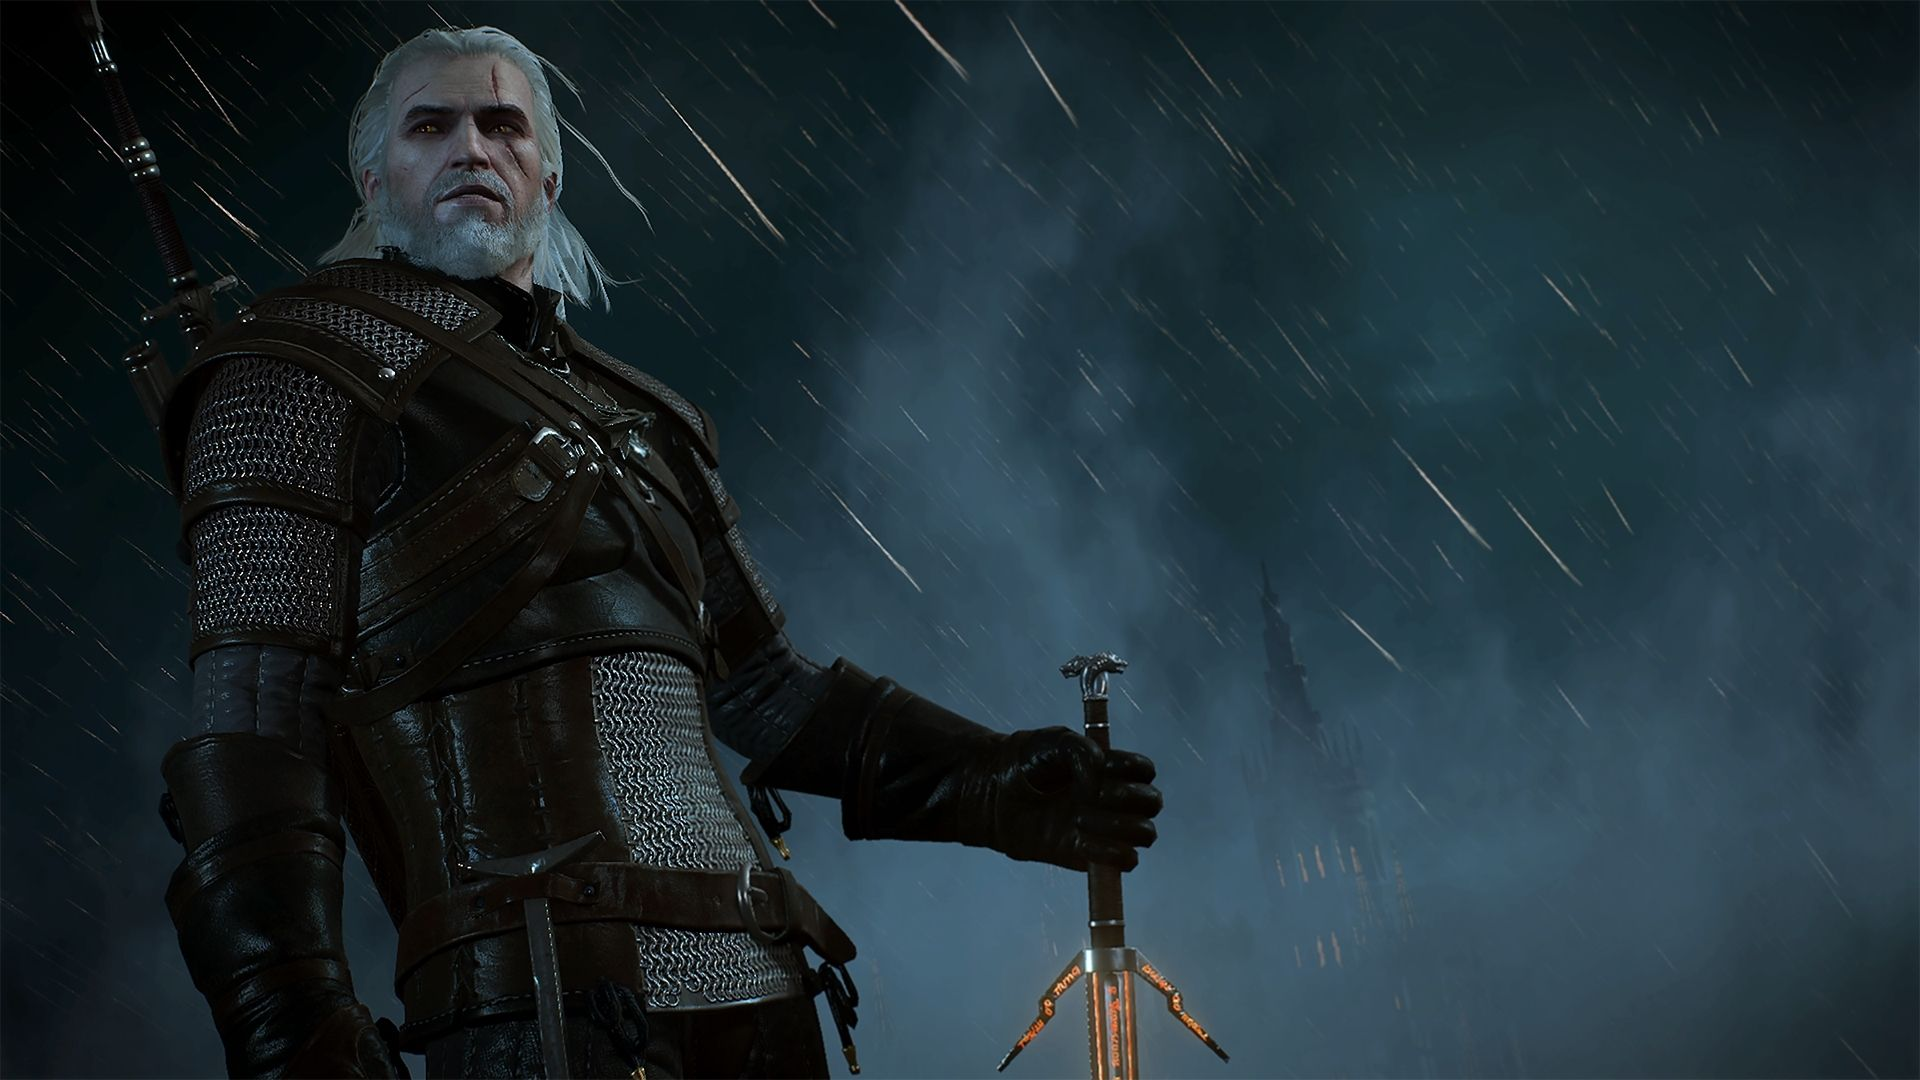 Witcher, PC Wallpaper HD